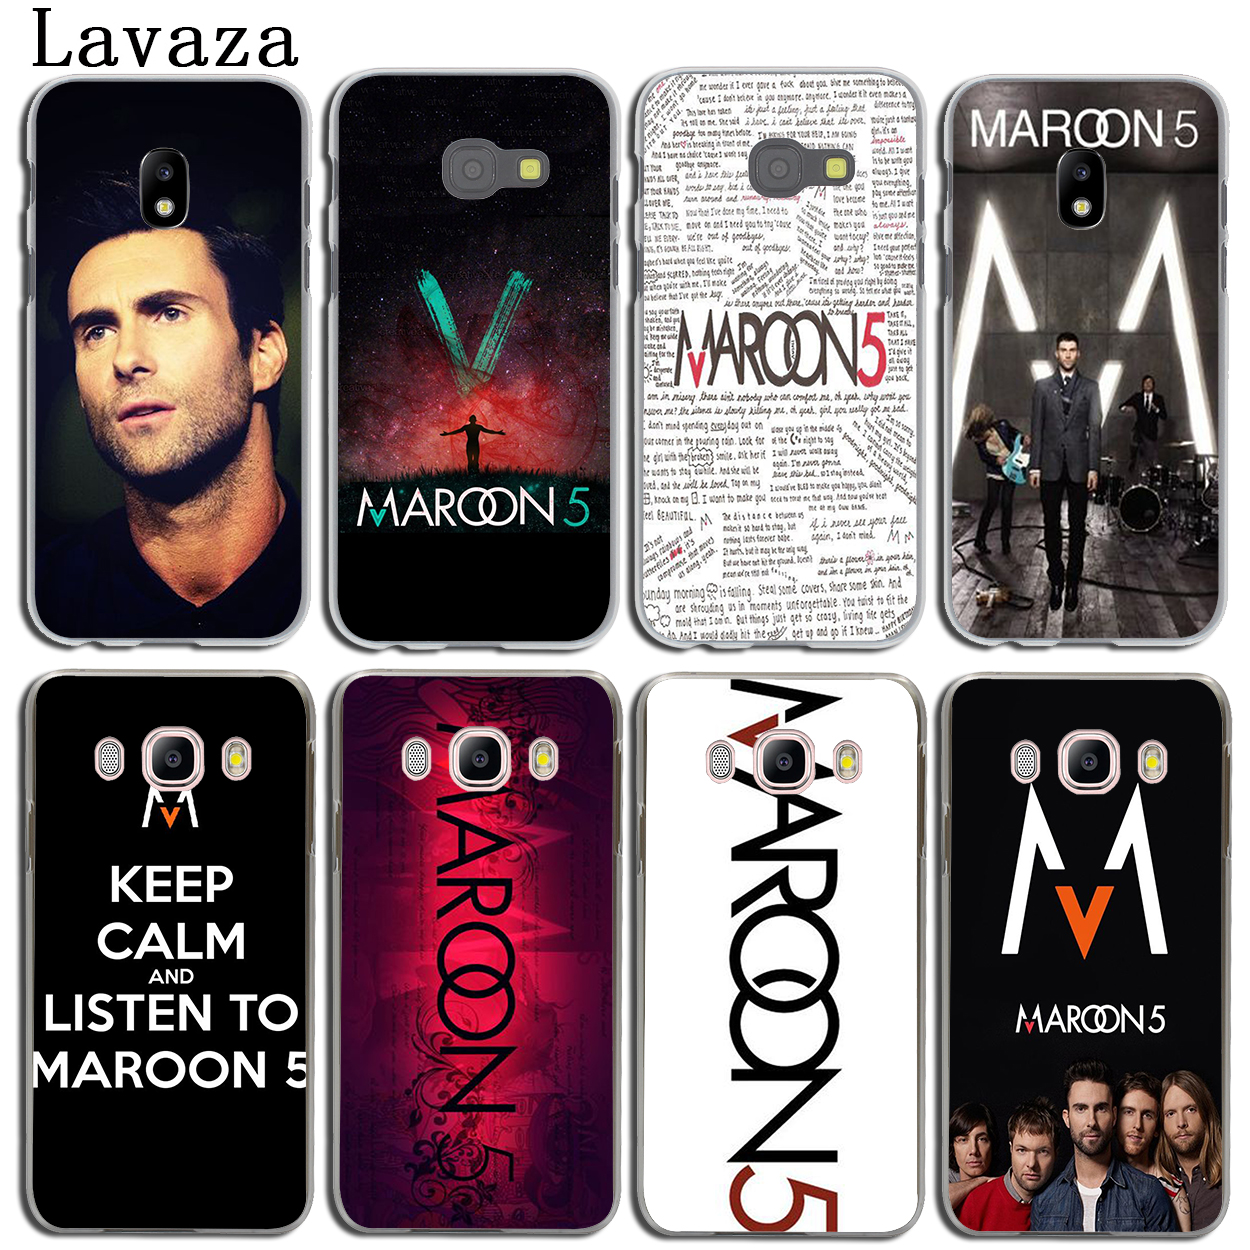 Lavaza maroon 5 Phone Shell Cover Case for Samsung Galaxy J3 J1 J2 J7 J5 2015 2016 2017 J2 Pro Ace J7 J3 J5 Prime Case